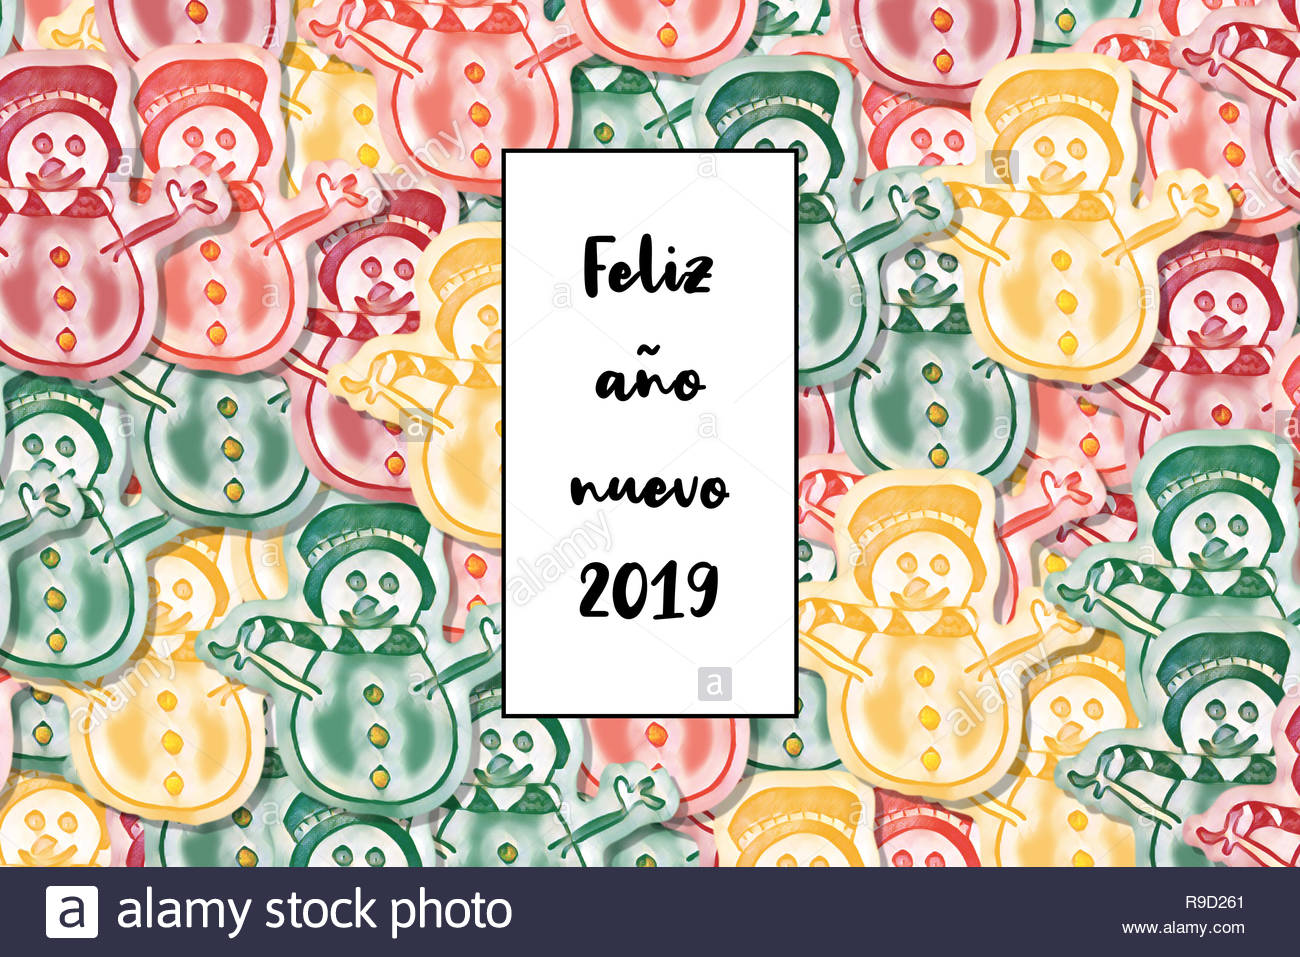 Feliz año nuevo 2019 card (Happy New Year in spanish) with colored snowman as a background - Stock Image